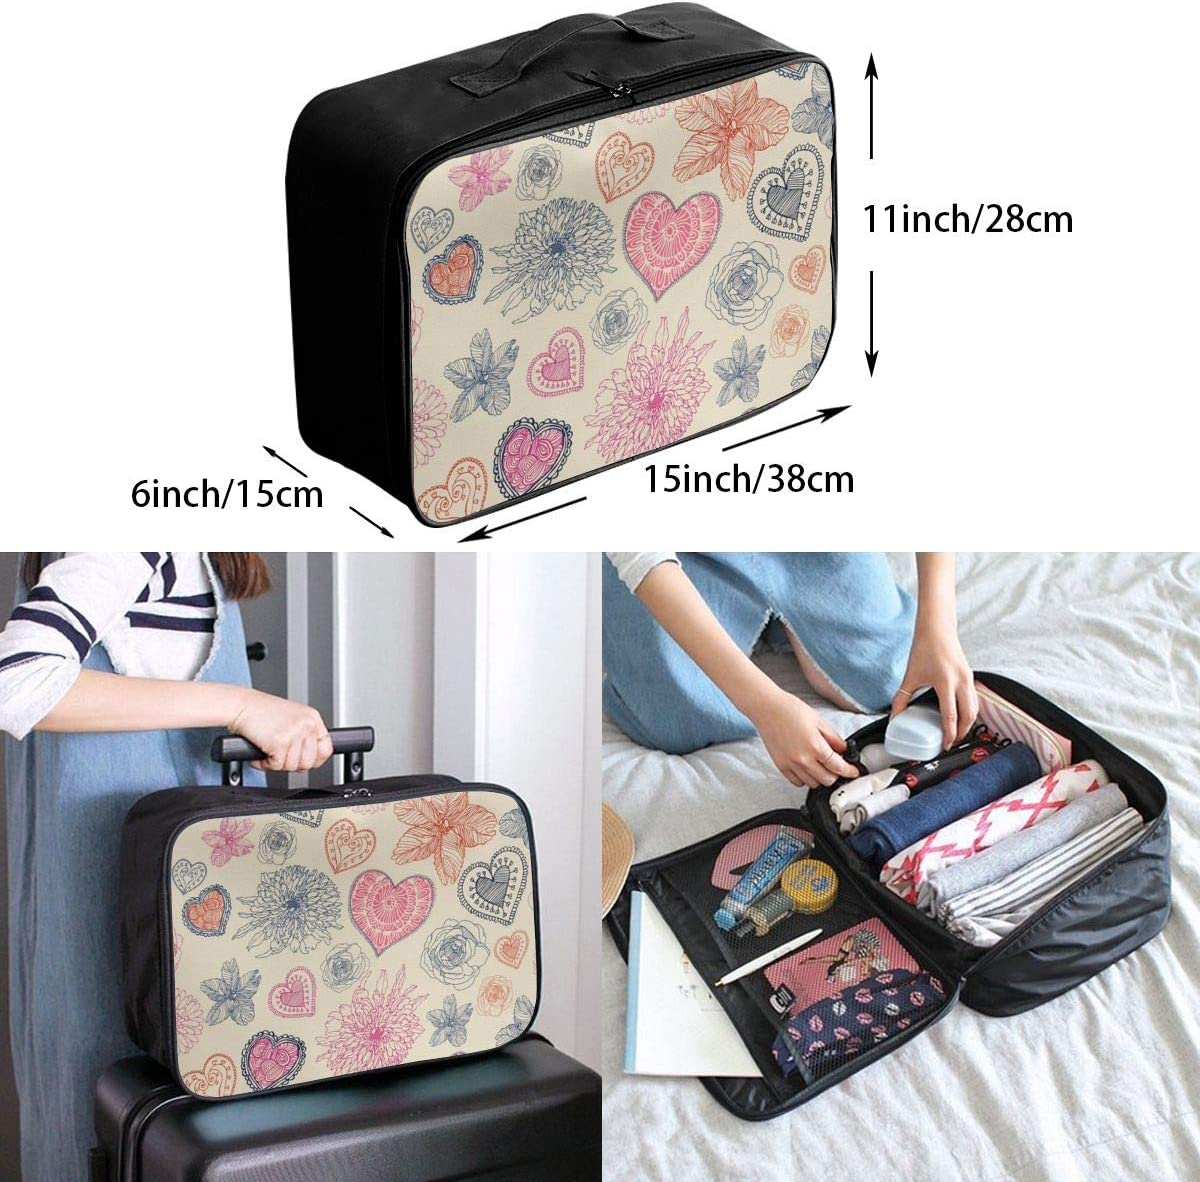 Yunshm Vintage Floral Hearts Pattern Vector Image Customized Trolley Handbag Waterproof Unisex Large Capacity For Business Travel Storage